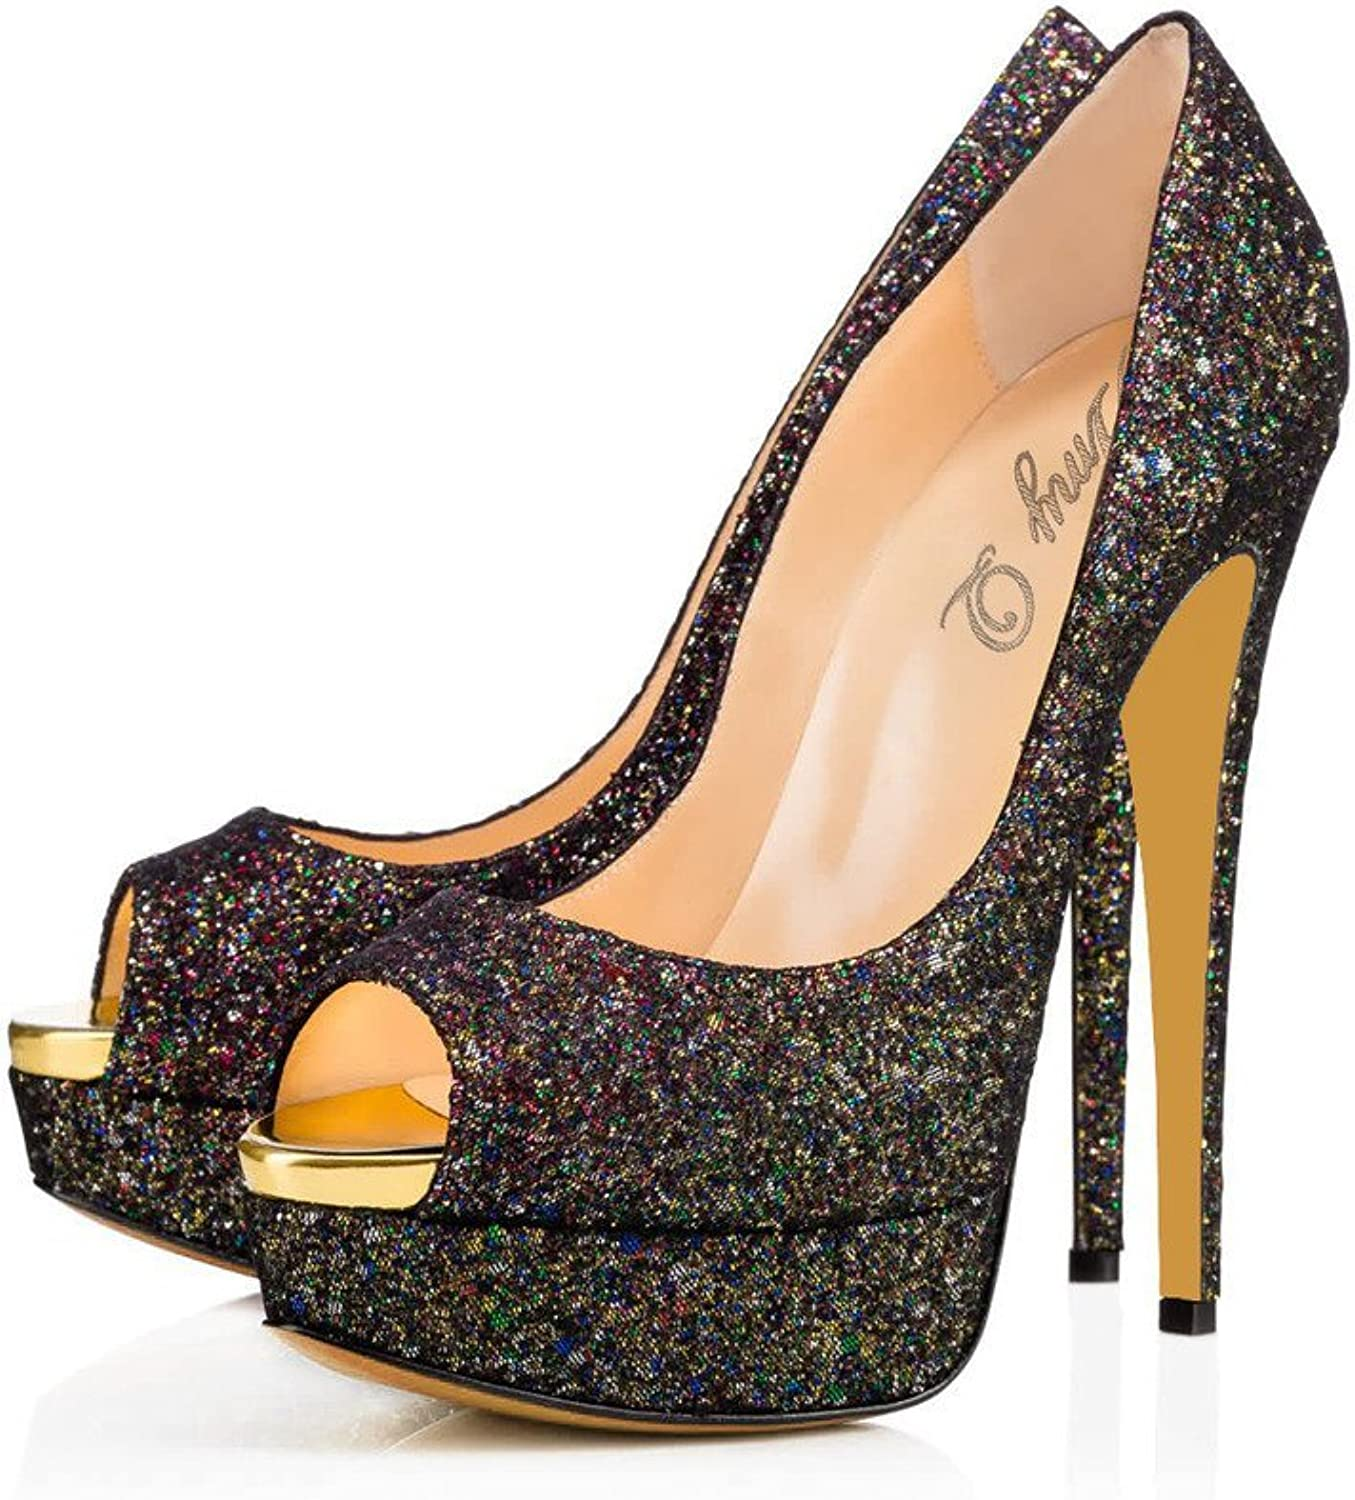 Amy Q Glitters Peep Toe High Heel Blackmps Big Size Handmade Platform shoes for Party Dress